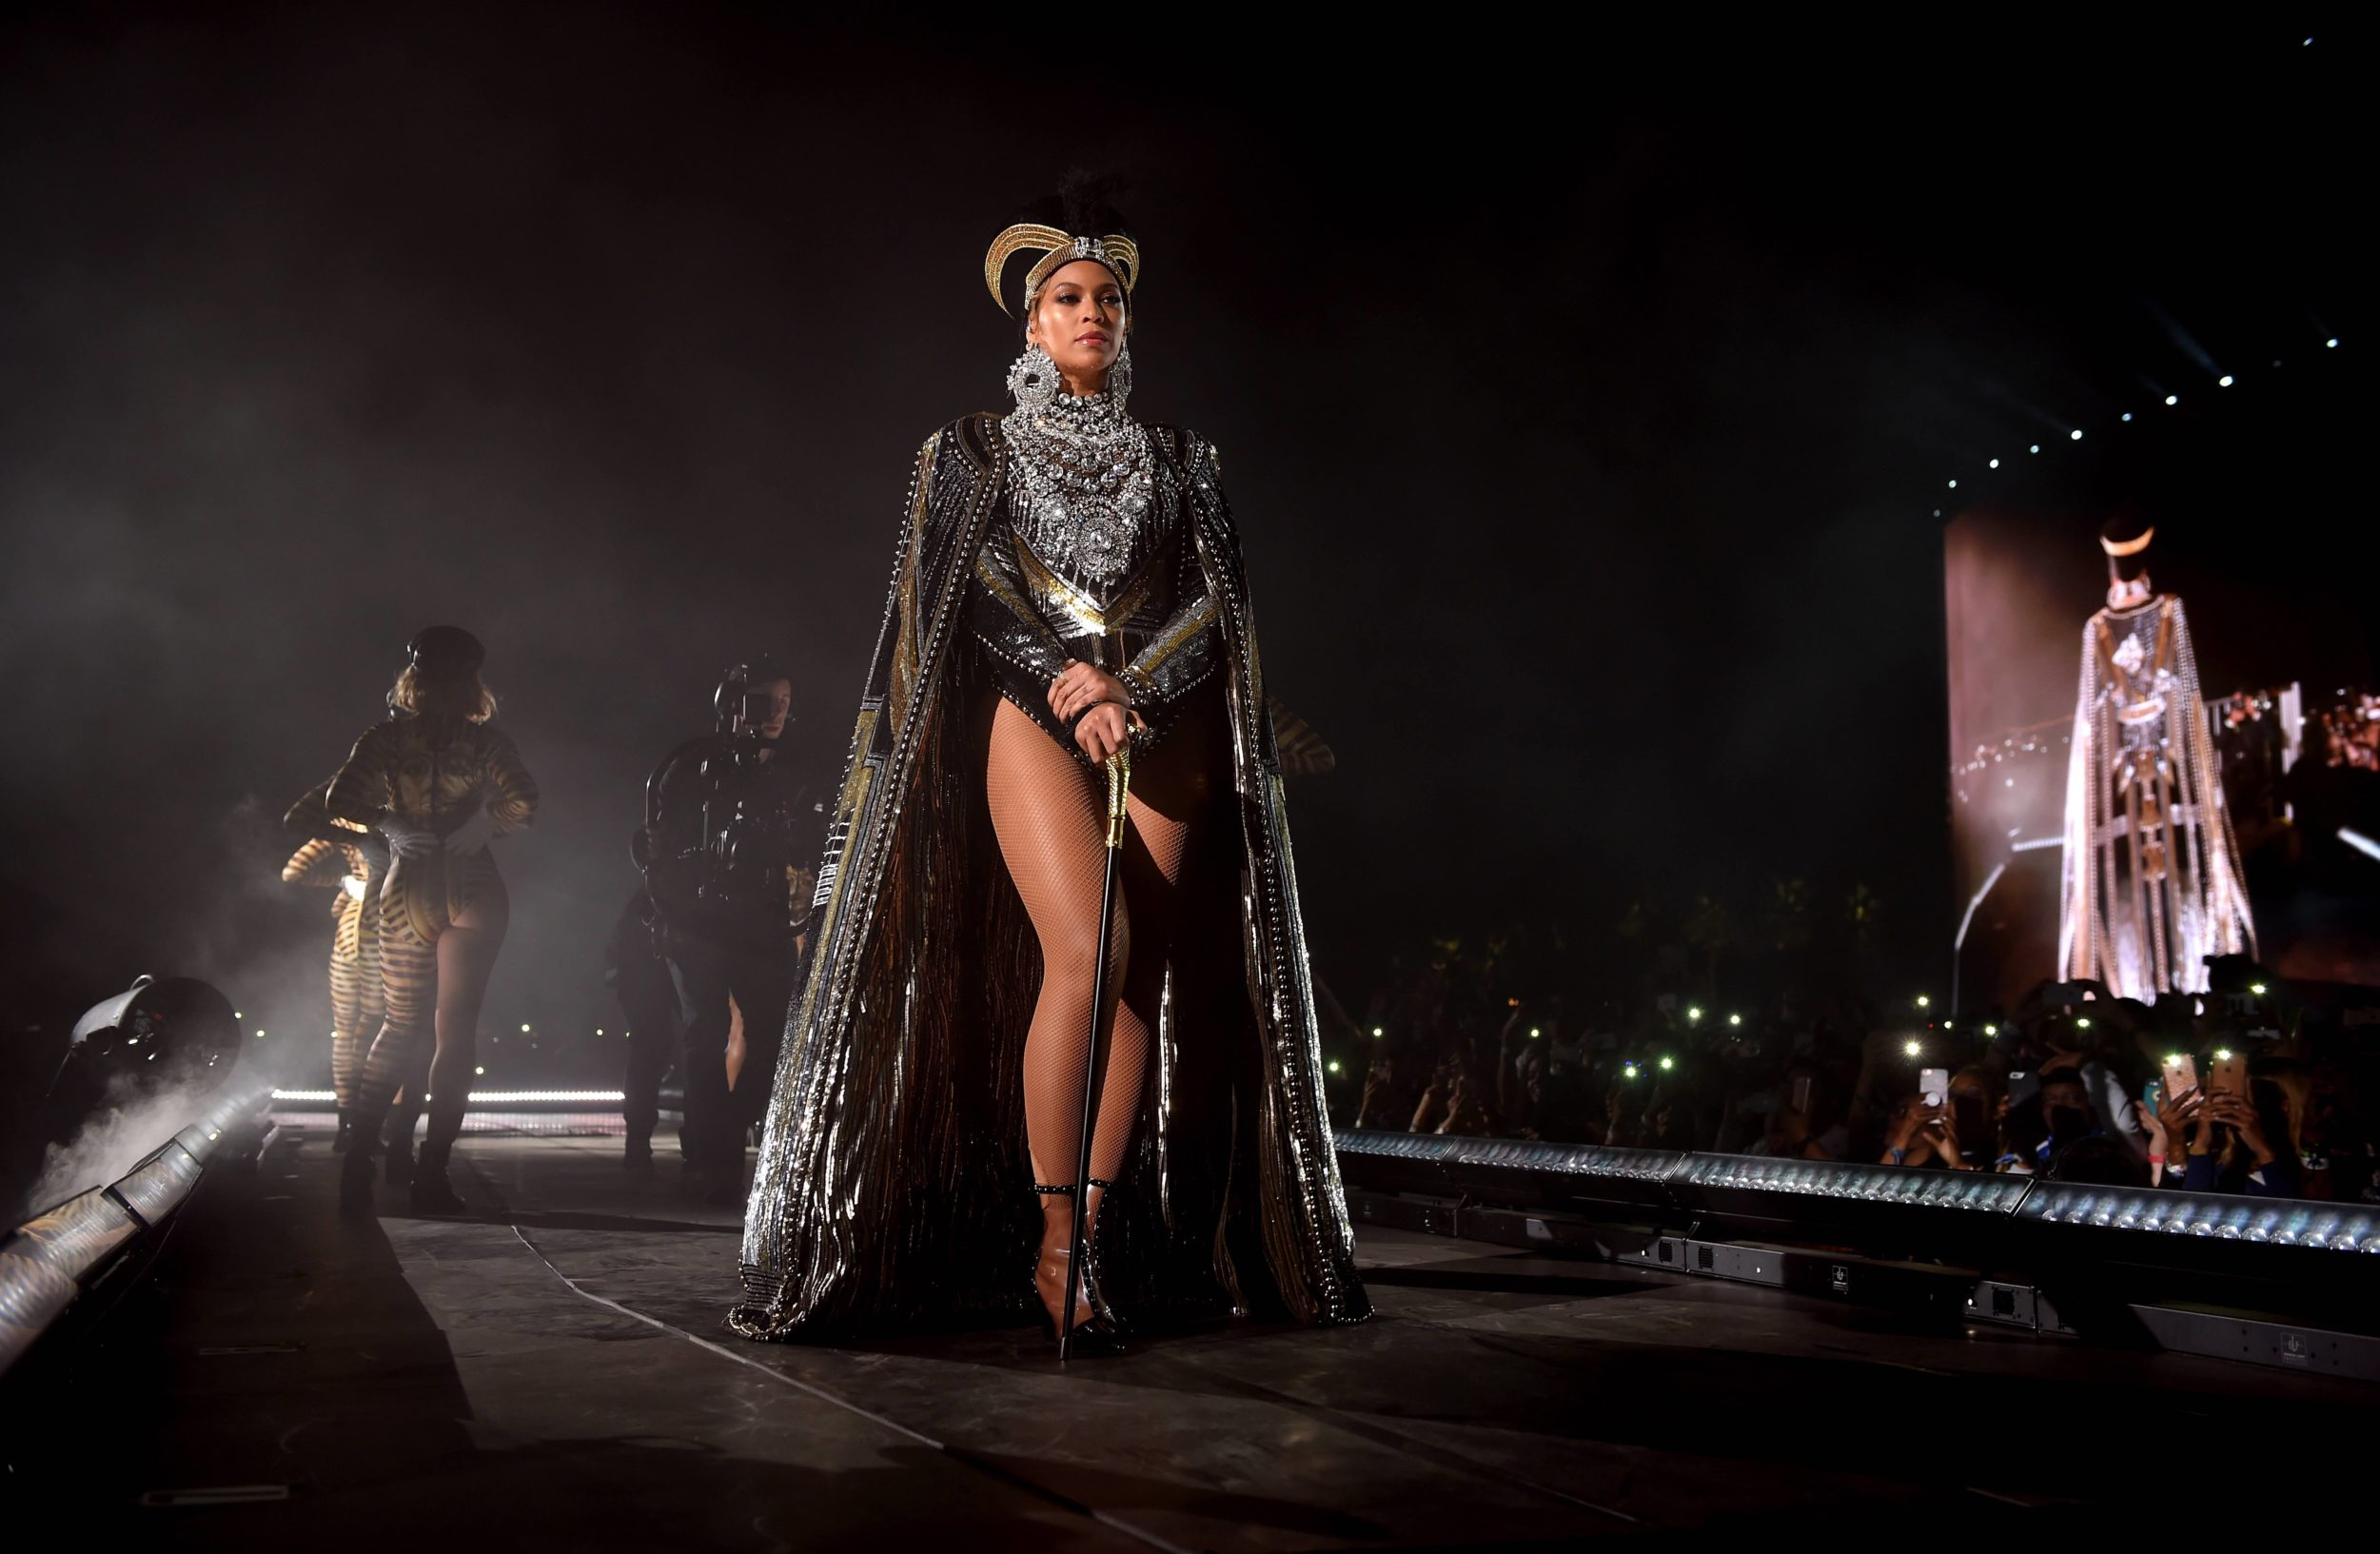 Here's why Beyoncé's headlining appearance at Coachella is so monumental